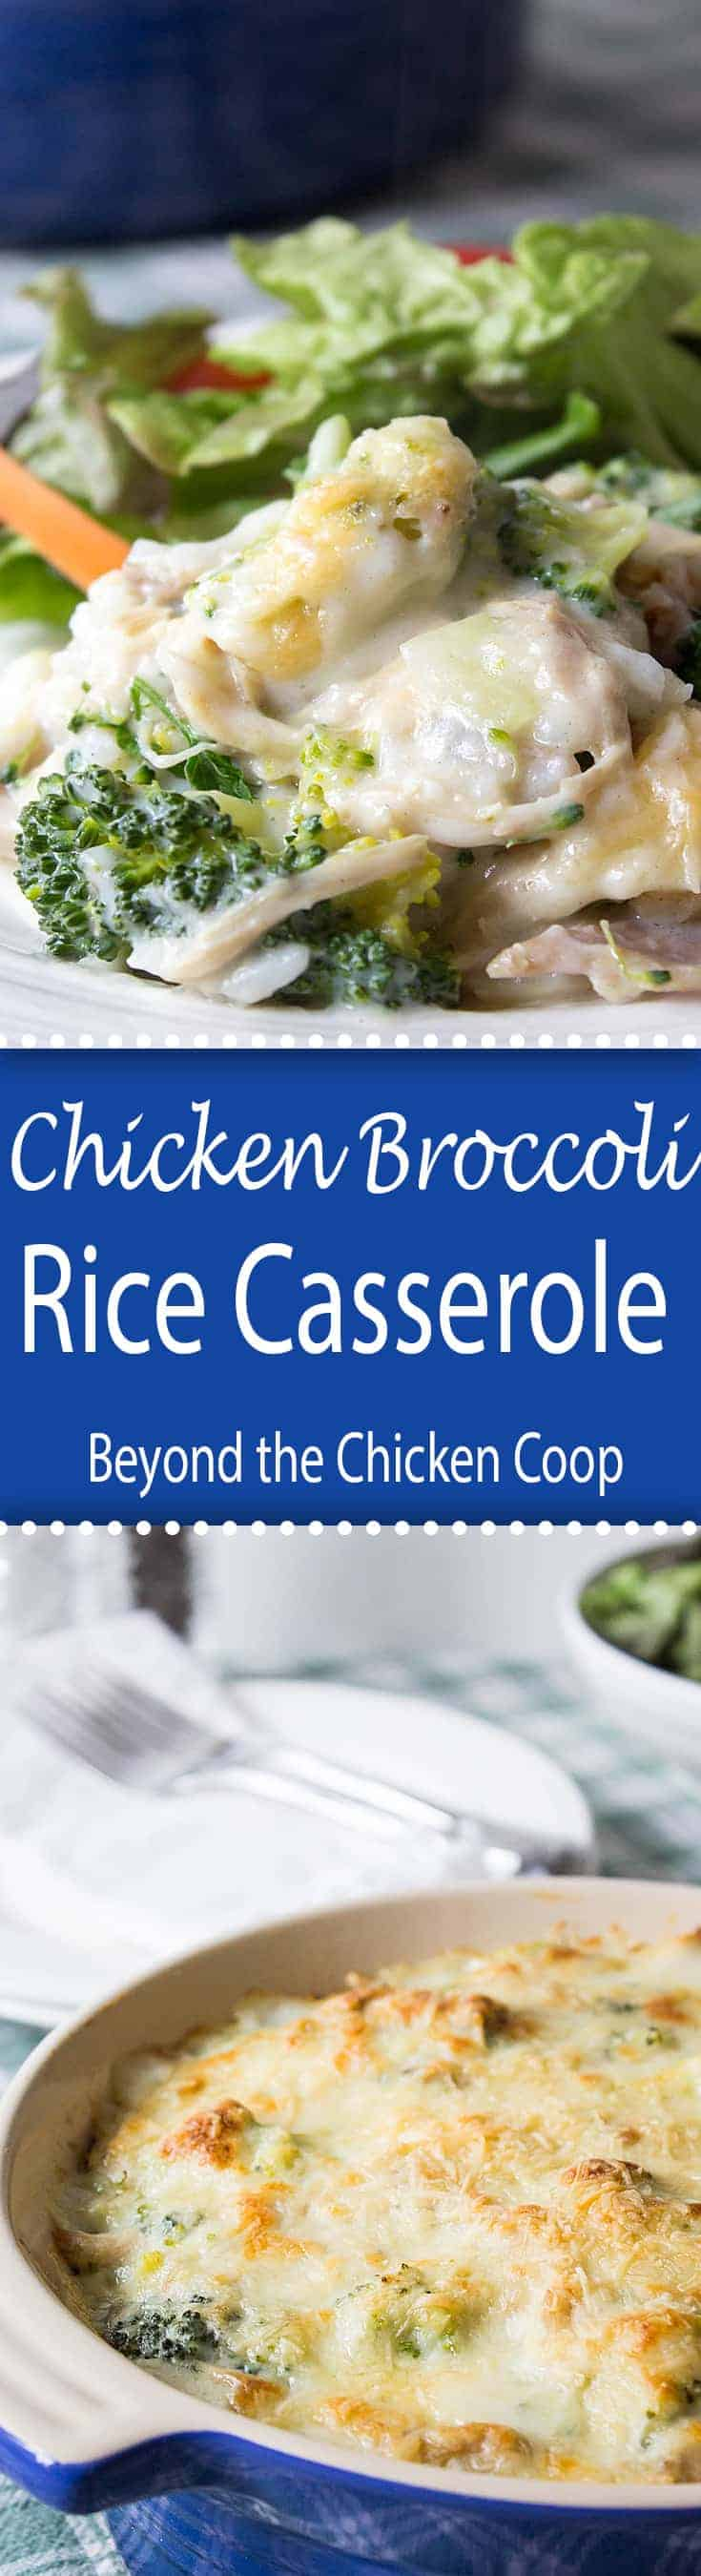 This Chicken, Broccoli and Rice Bake is perfect for dinner any night of the week. Can be made ahead of time and baked when needed. Perfect freezer meal.